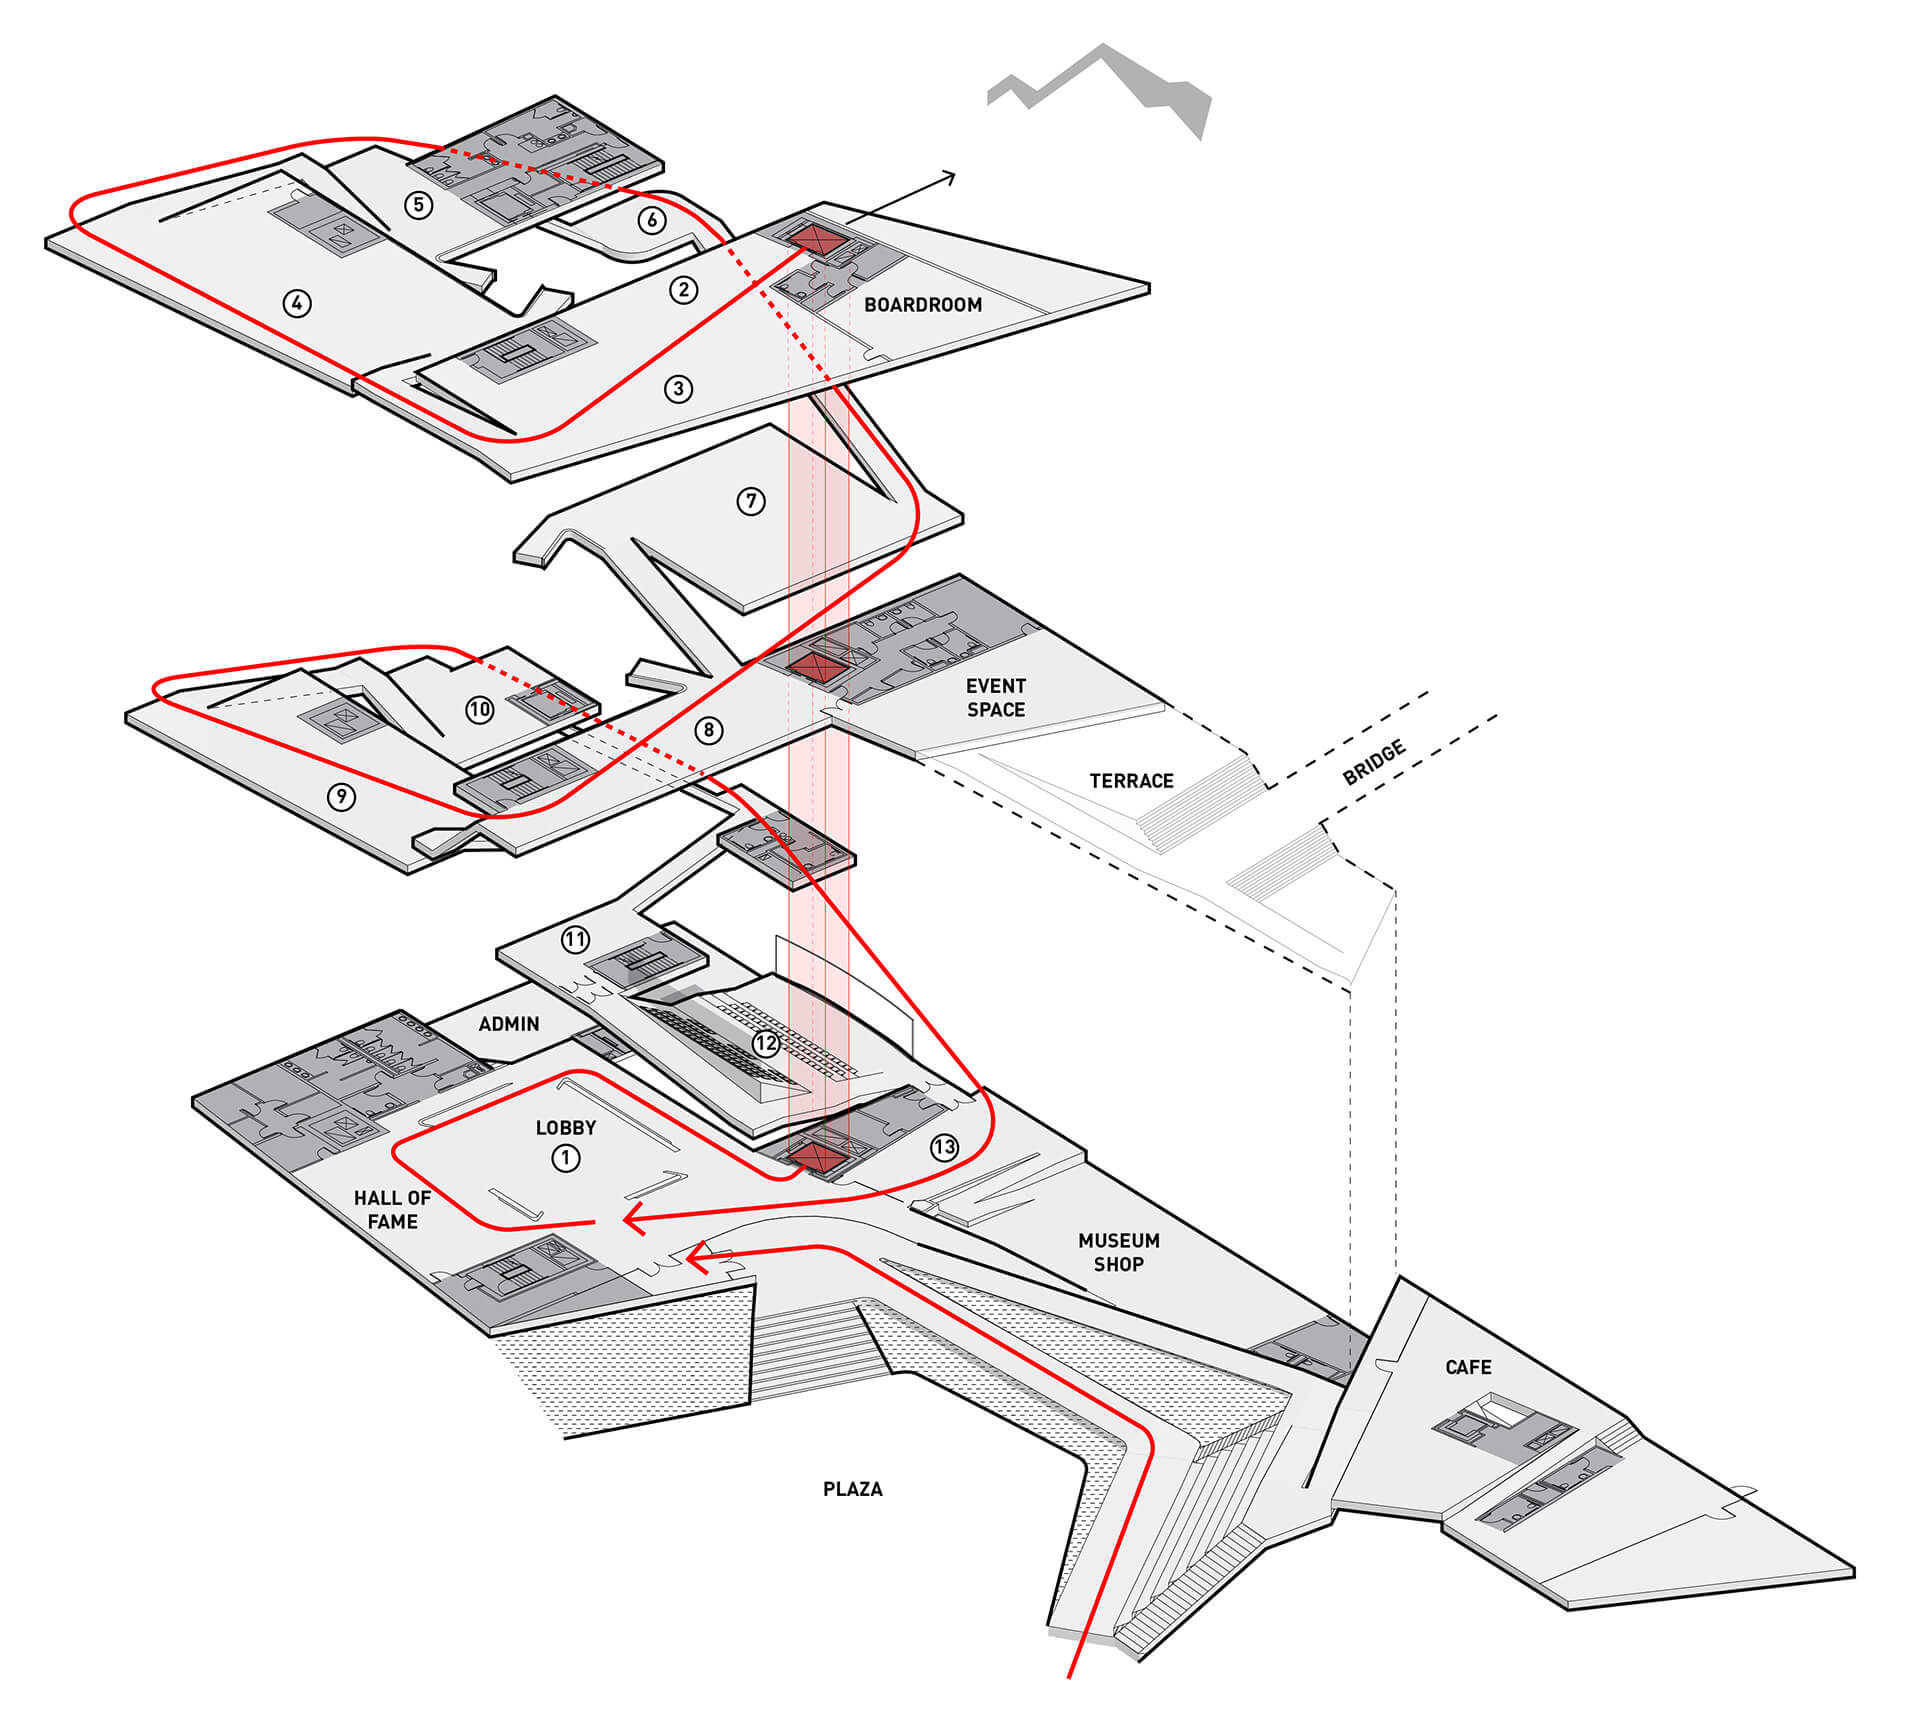 Floor wise axonometric exploded view of the USOP Museum Layout | United States Olympic and Paralympic Museum | Diller Scofidio + Renfro | STIRworld